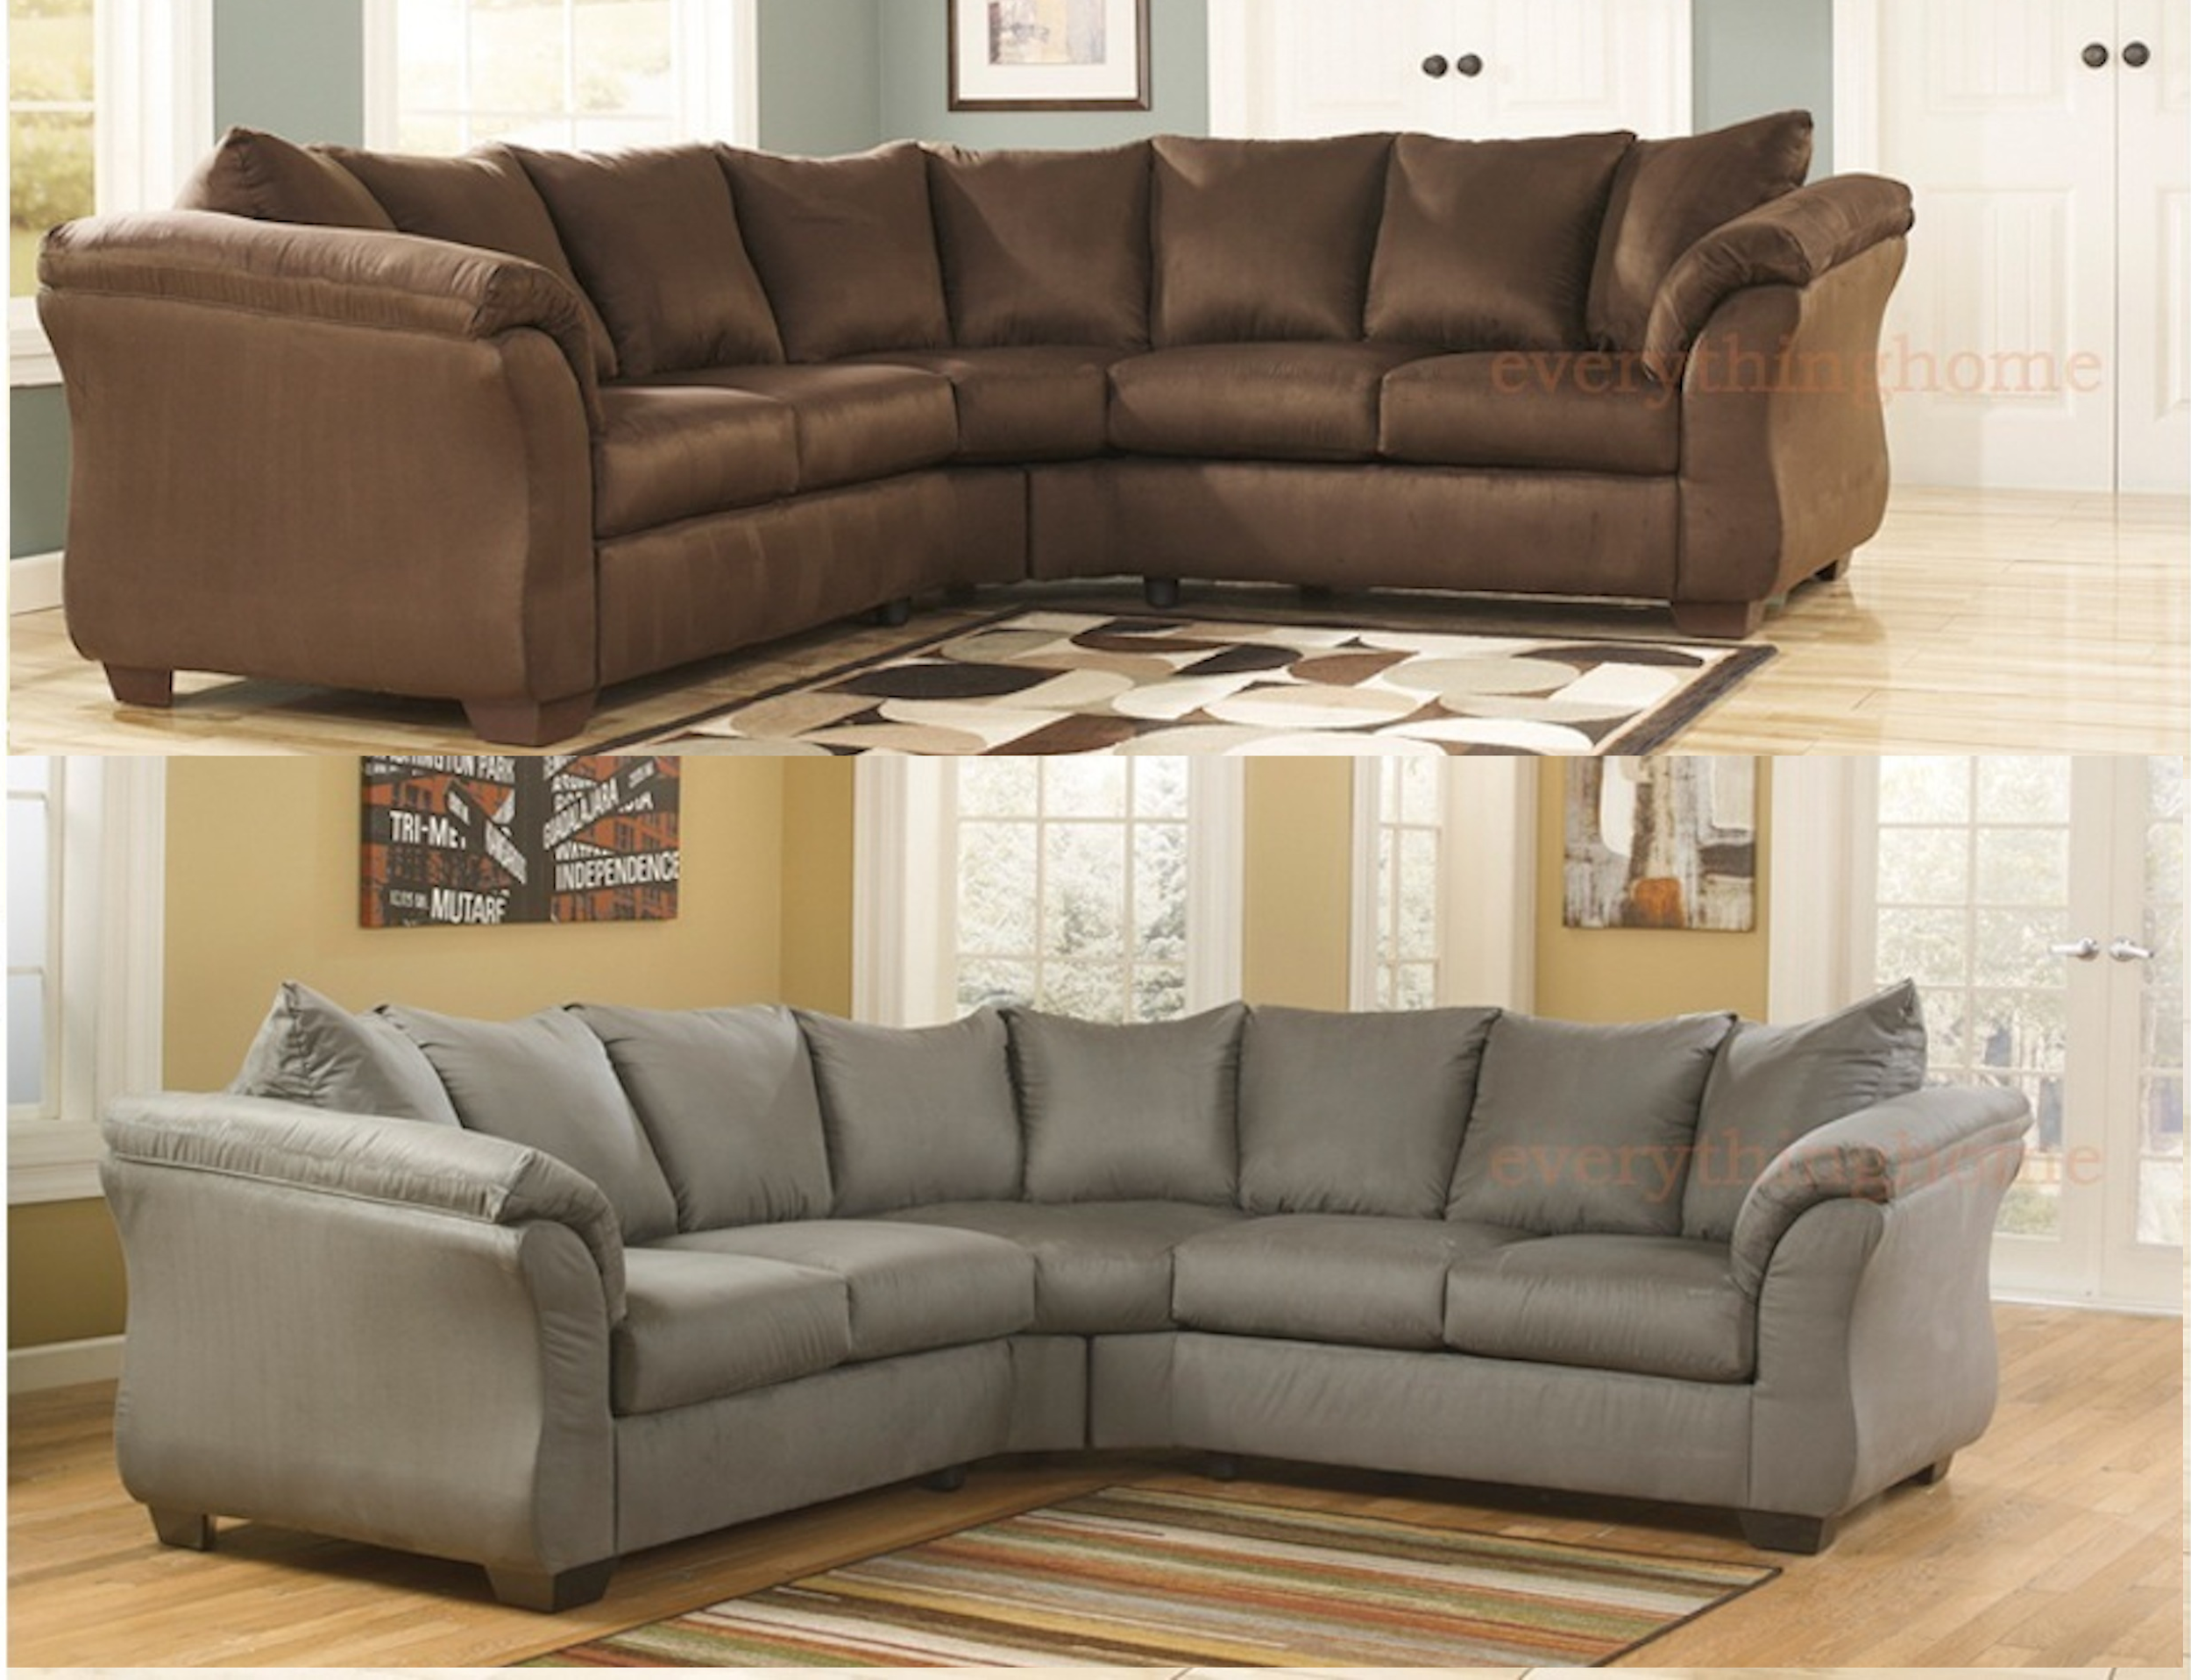 Details about CAFE BROWN COBBLESTONE GRAY SECTIONAL SOFA ASHLEY DARCY  SIGNATURE MICRO FABRIC